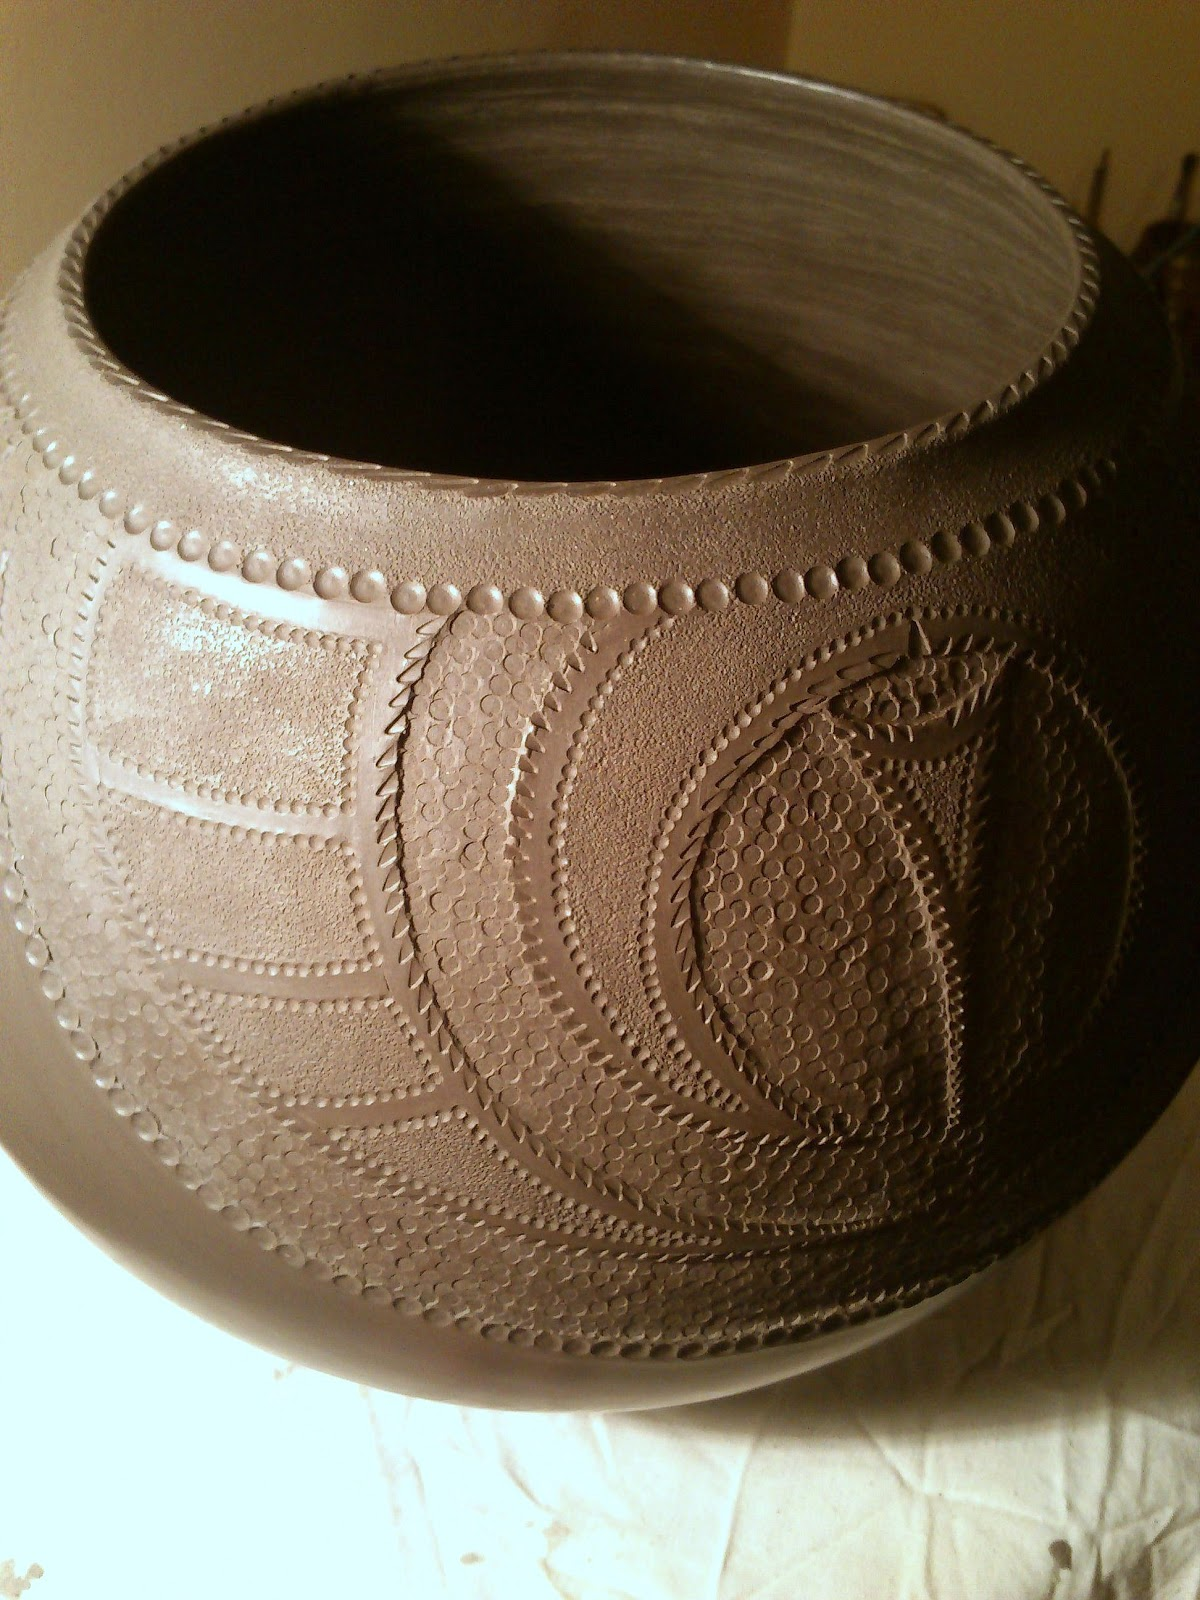 Katarina bobic s coiled pottery new pot coiling and